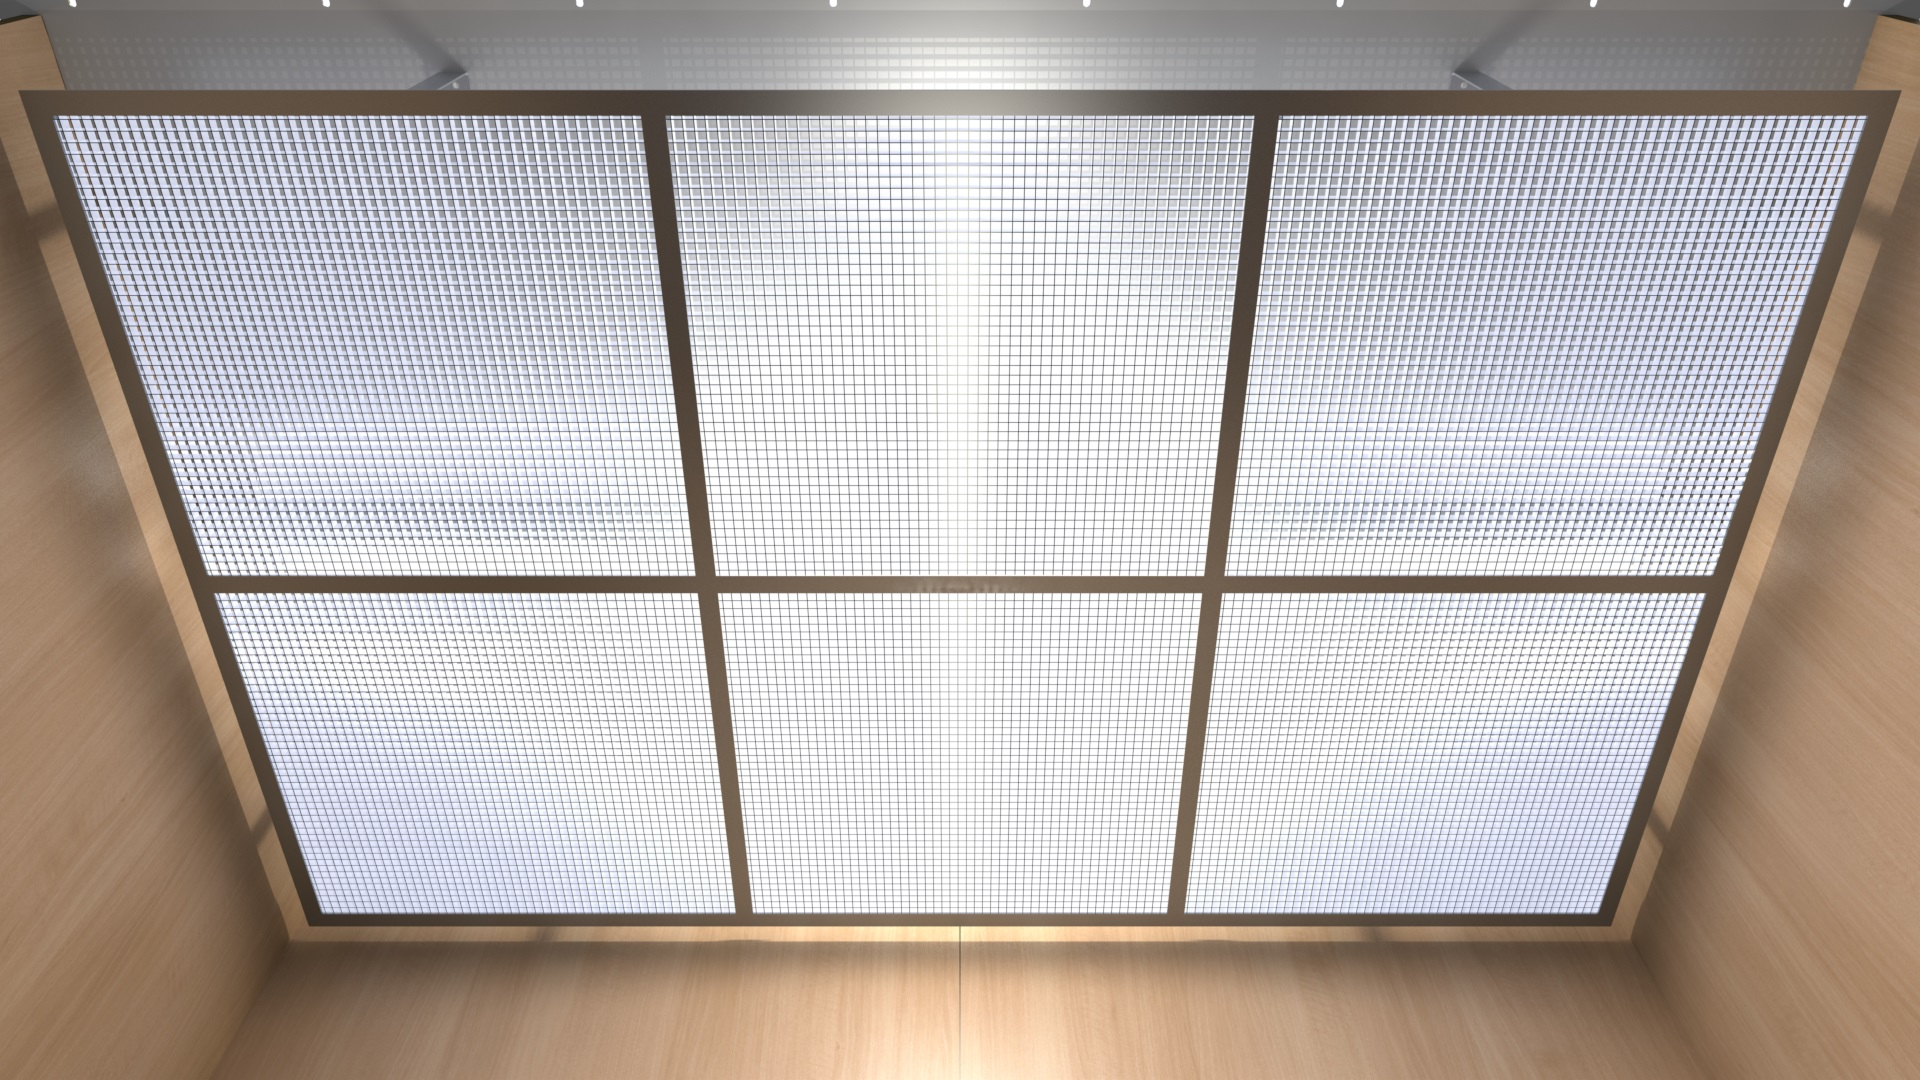 Ceilings And Lighting Canton Architectural Products & Egg Crate Lighting Panel - Democraciaejustica